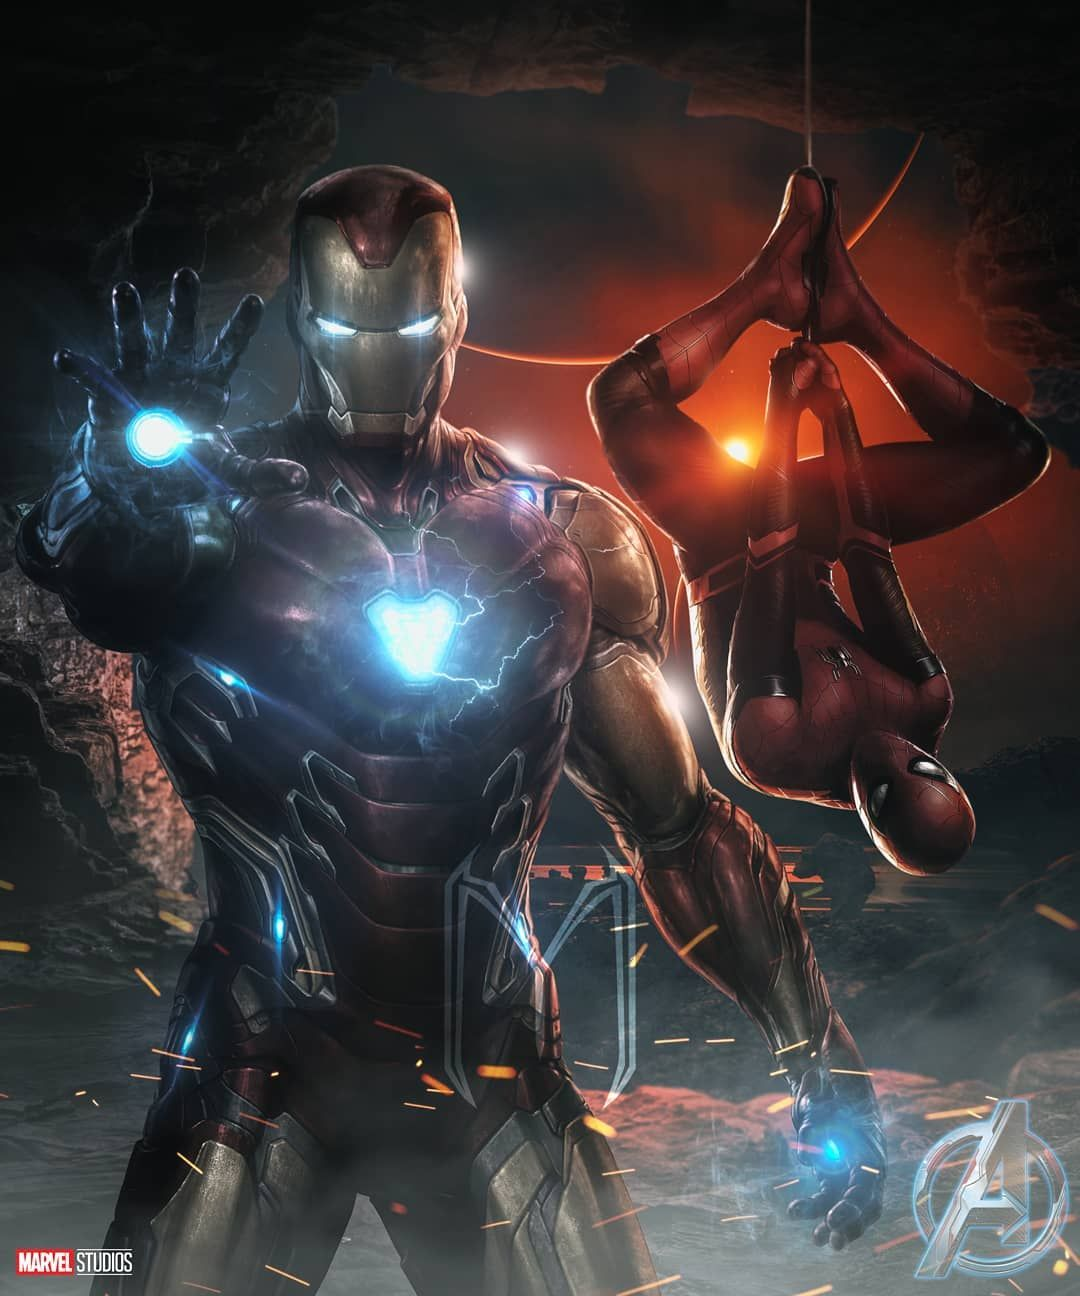 To Build Up The Future You Have To Sacrifice The Past Robertdowneyjr Tomholland2013 Therussobroth Marvel Iron Man Iron Man And Spiderman Iron Man Avengers